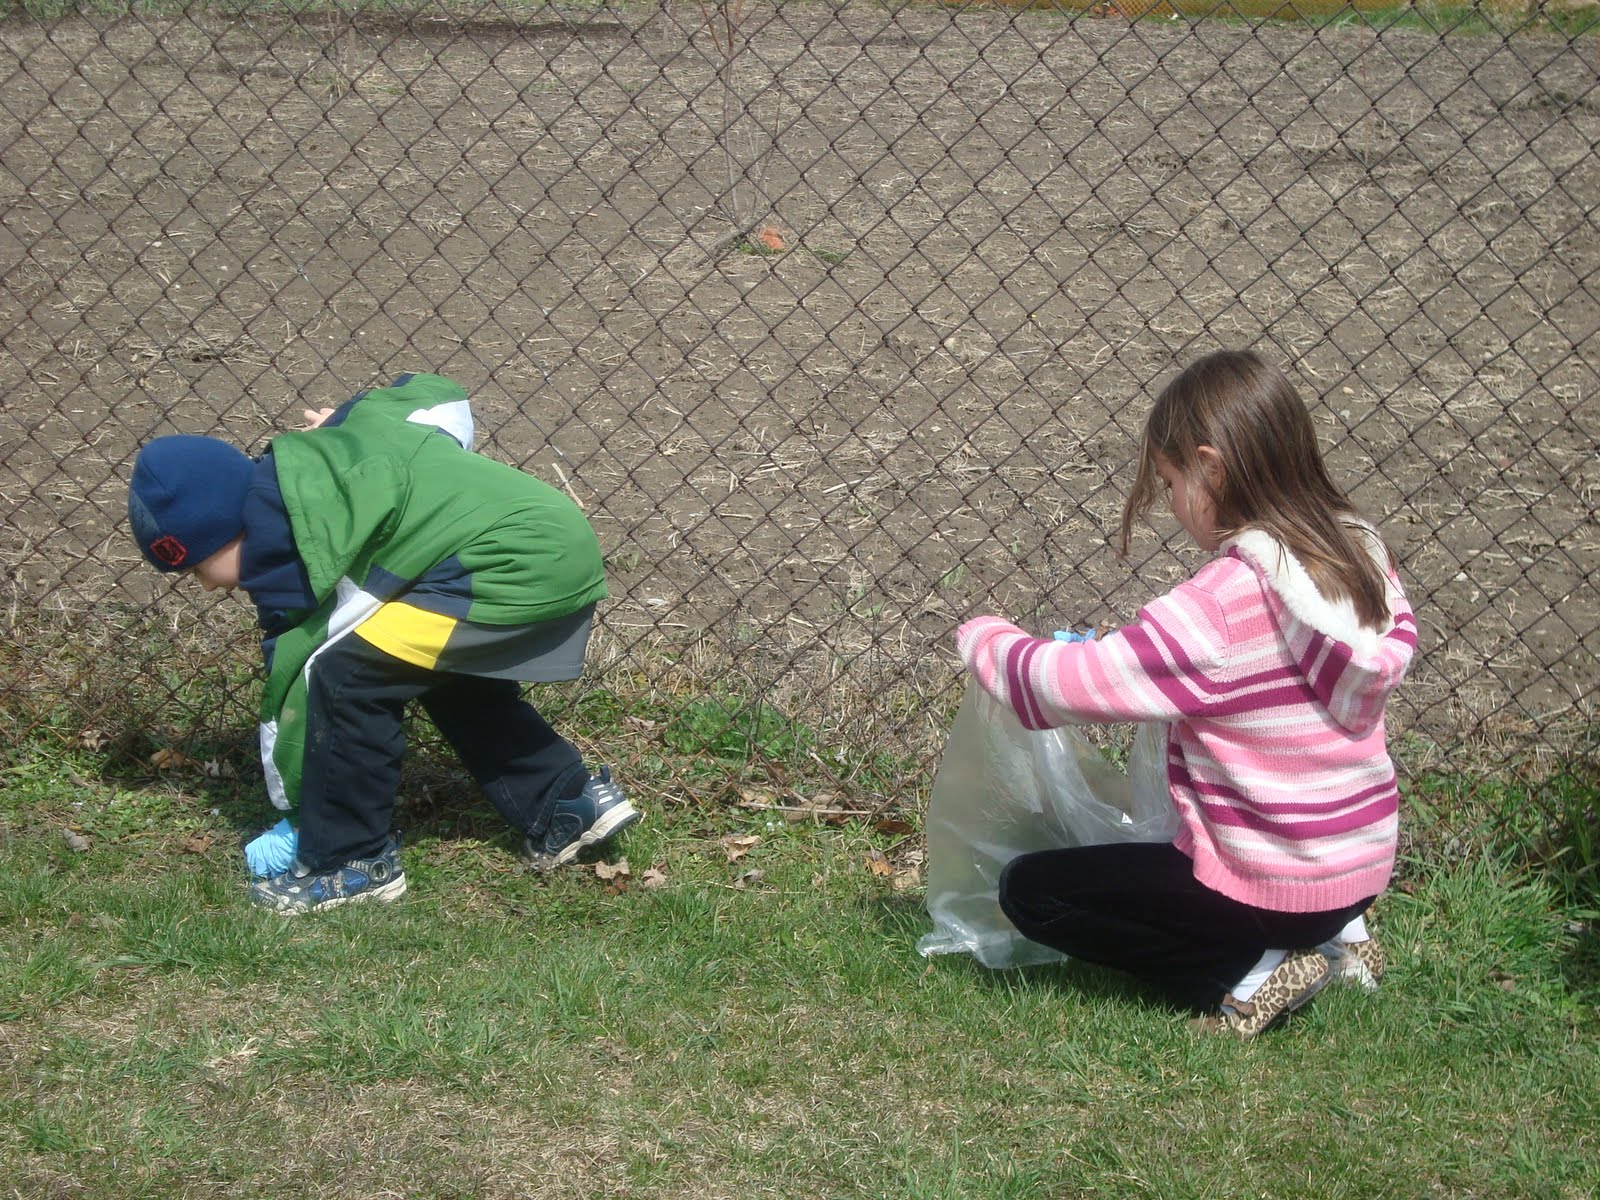 Joyful Learning in the Early Years: Earth Day Yard Clean Up